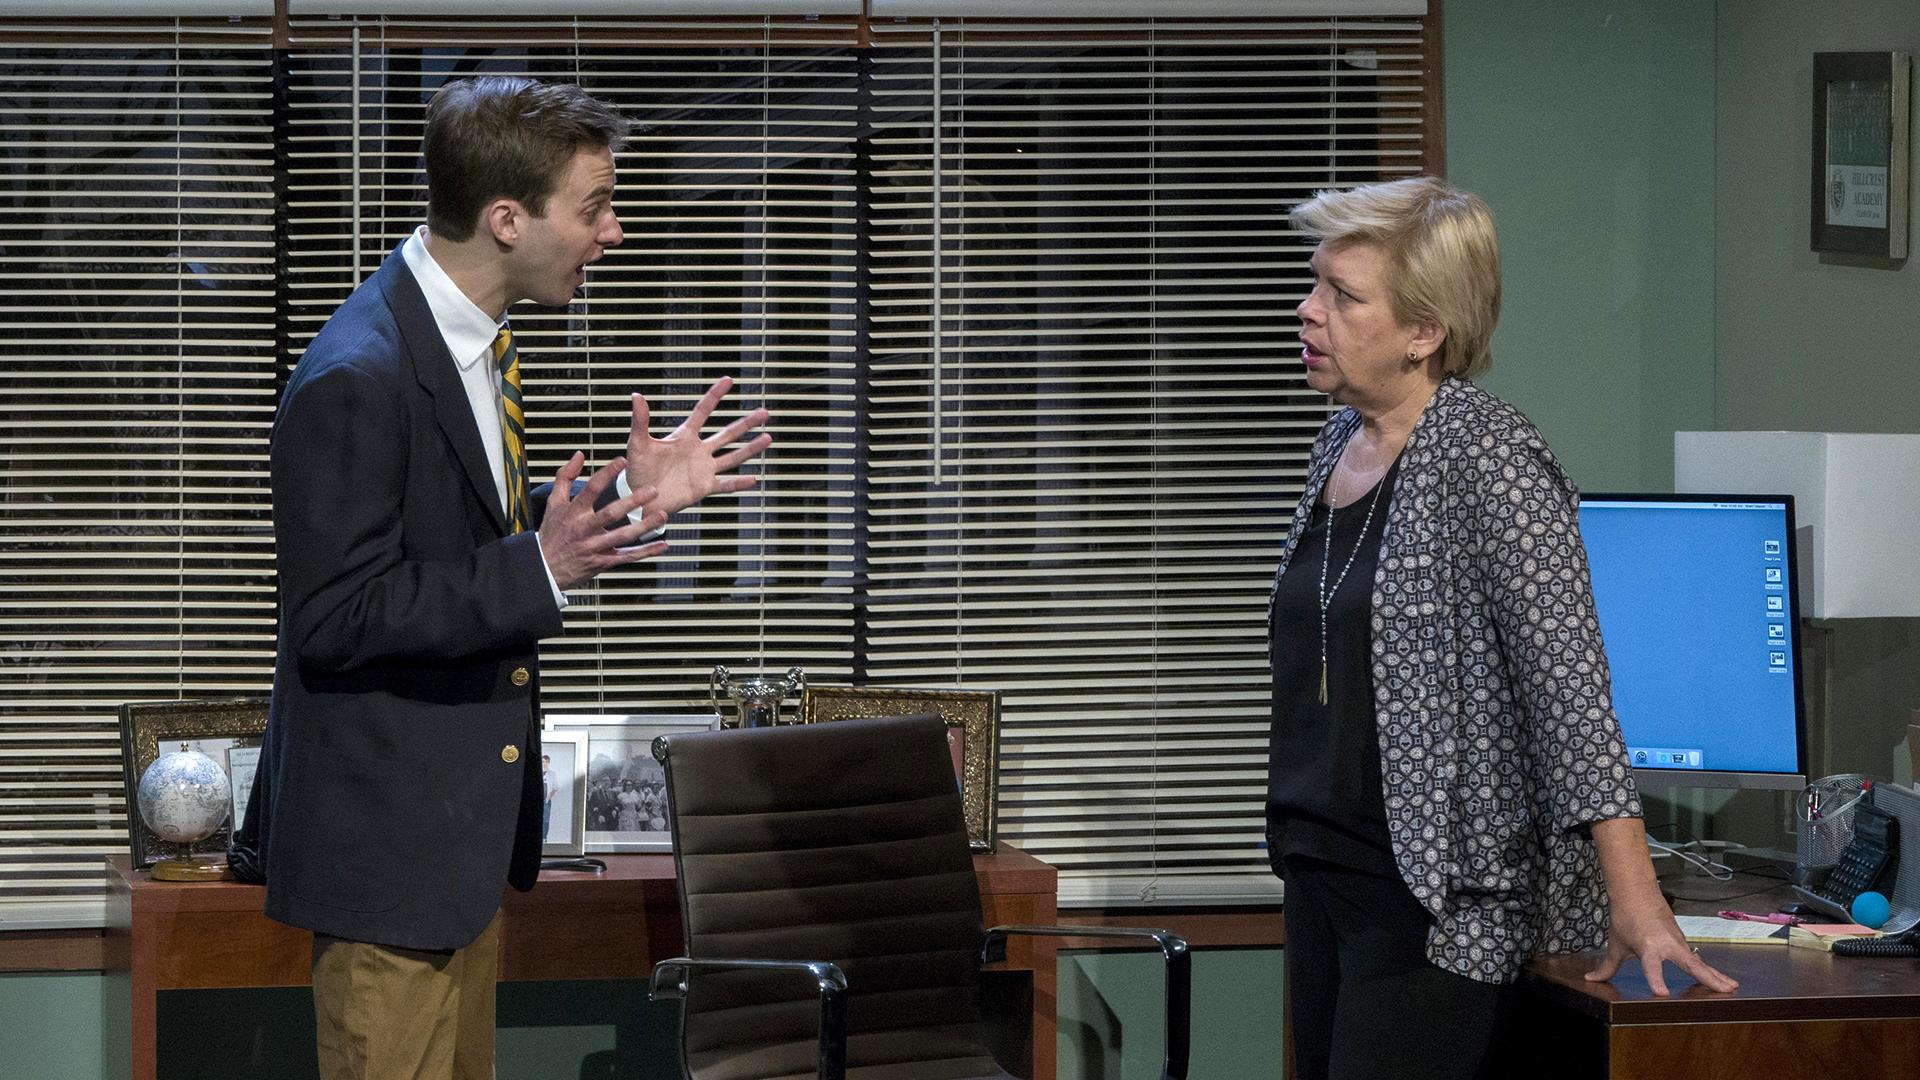 """Admissions"" stars Kyle Curry (left) as Charlie, an outstanding white male student left shattered when his application to Yale is deferred. Meighan Gerachis plays Charlie's mom Sherri, the diversity-focused director of admissions at Charlie's prep school who learns just how far she'll go to help get her son into college. (Photo credit: Charles Osgood)"